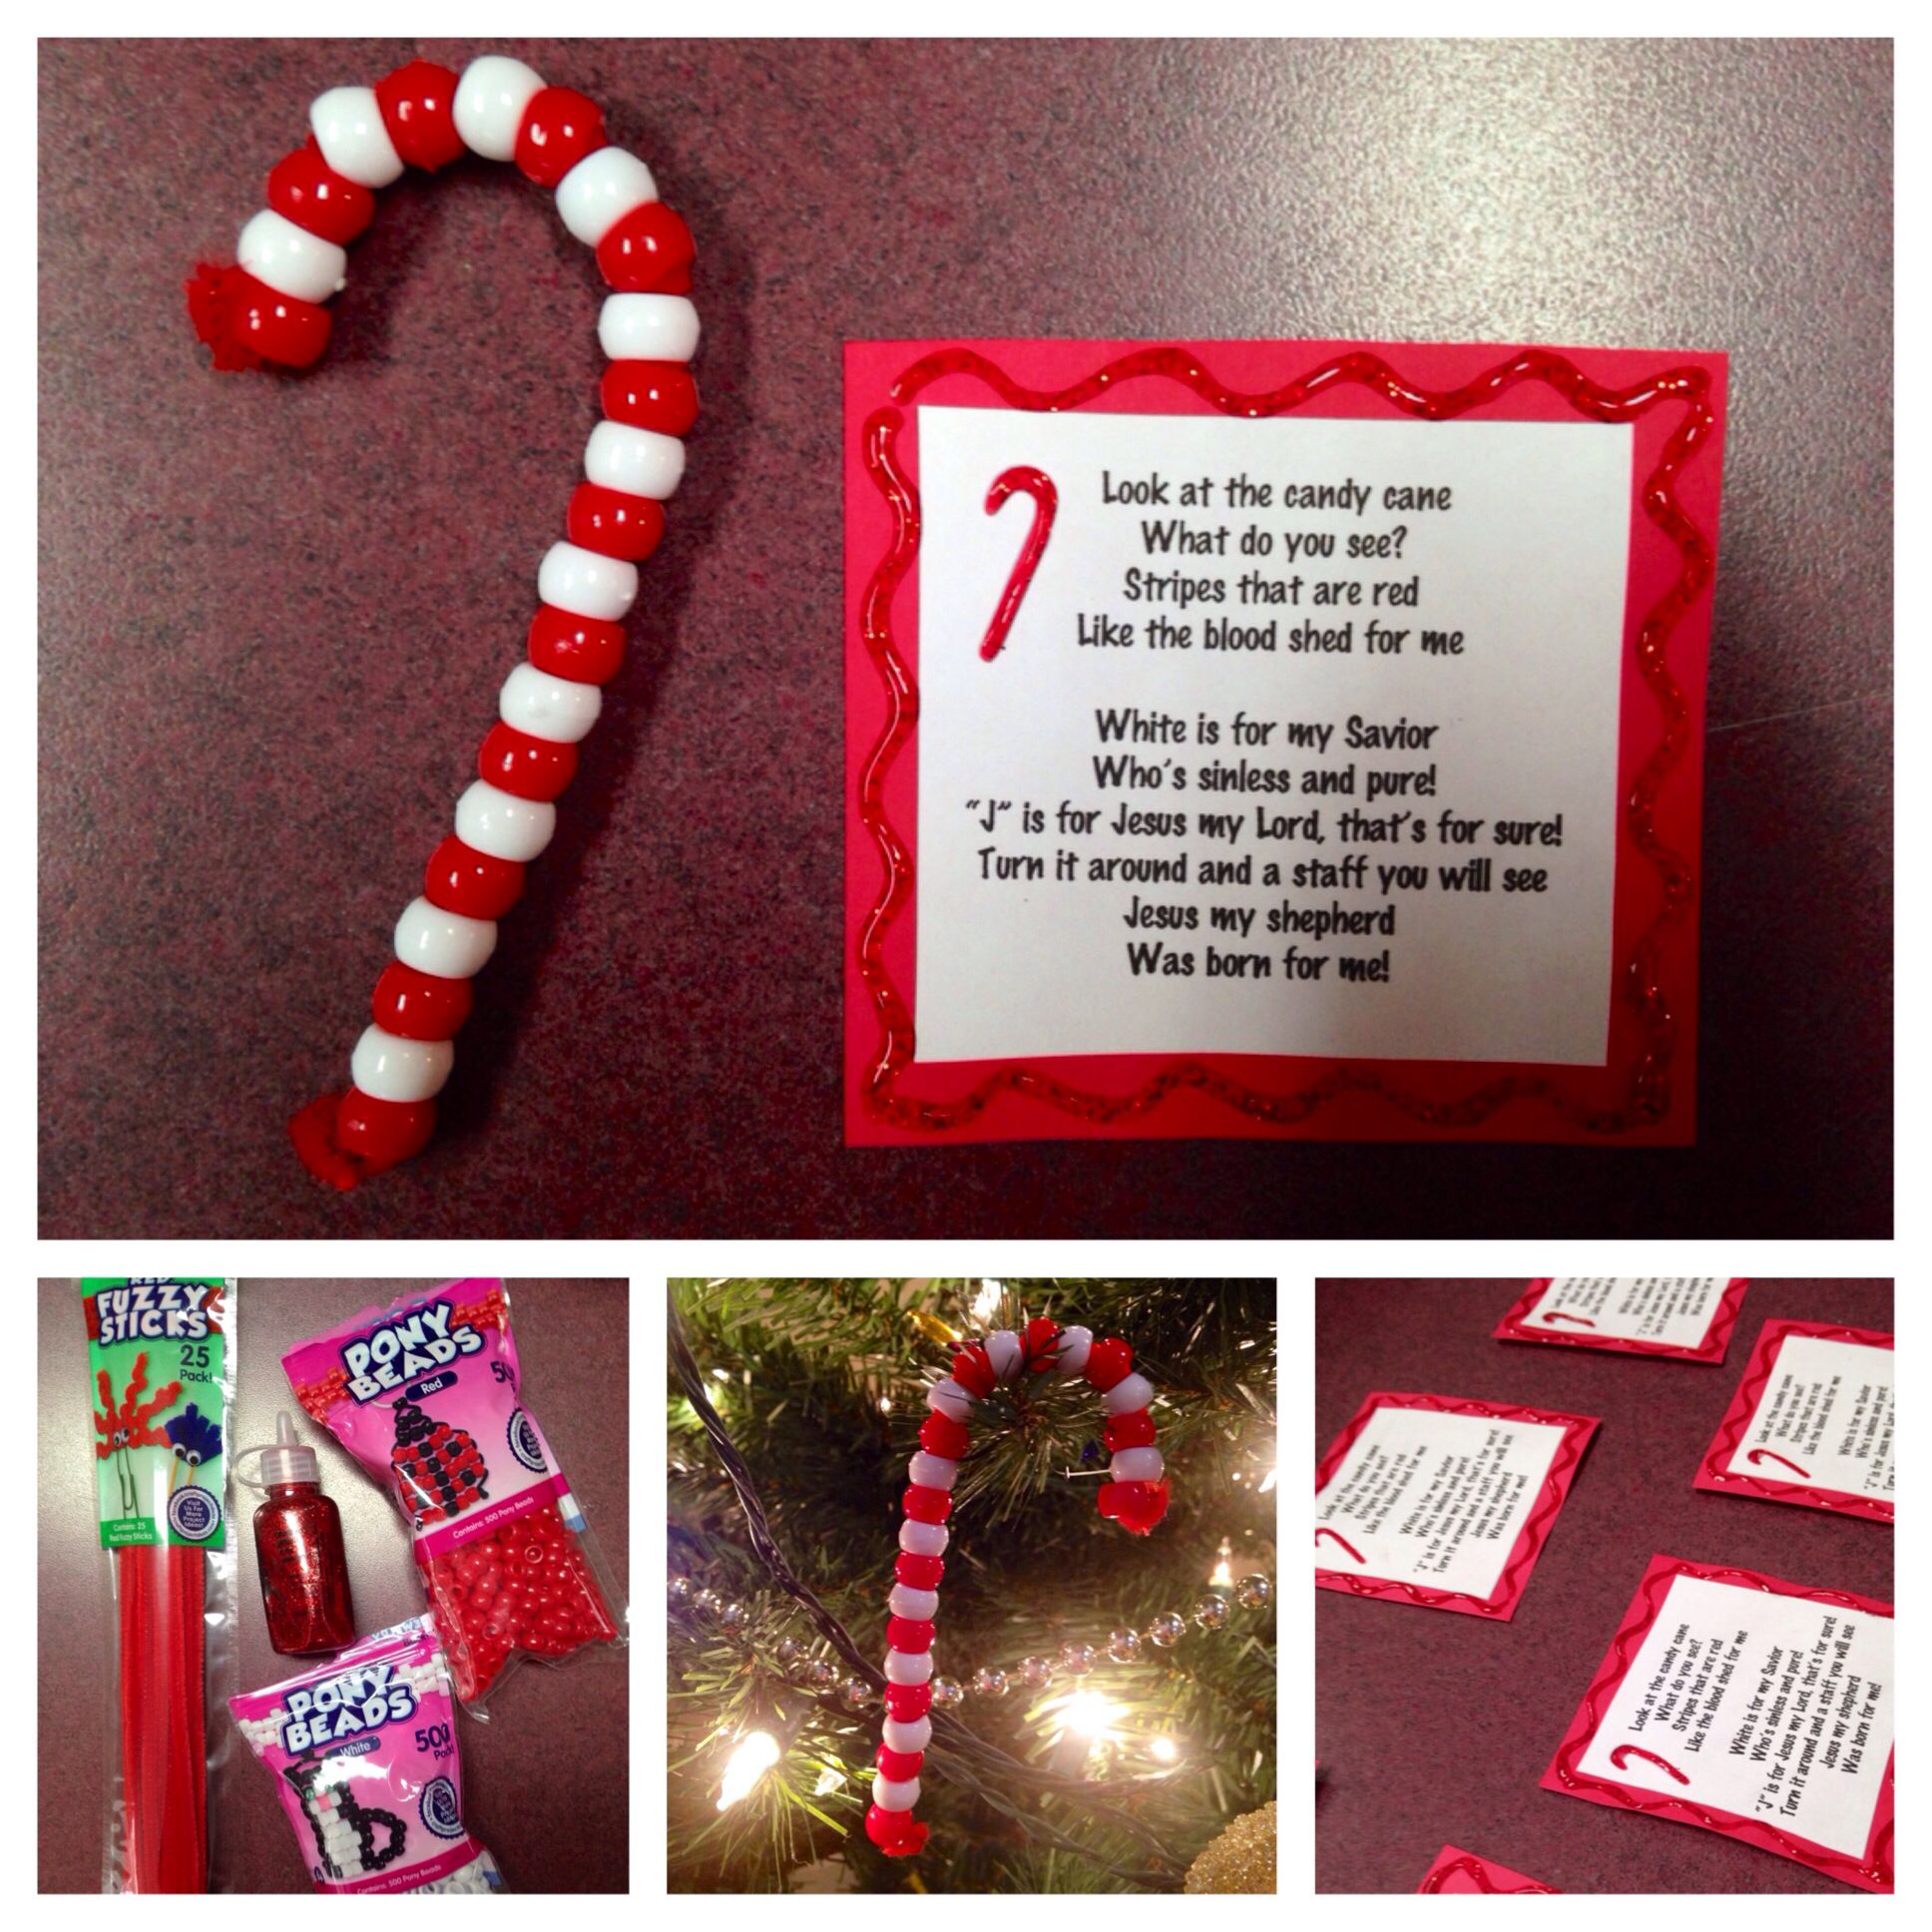 Great Sunday School Craft Candy Cane Ornaments Made From